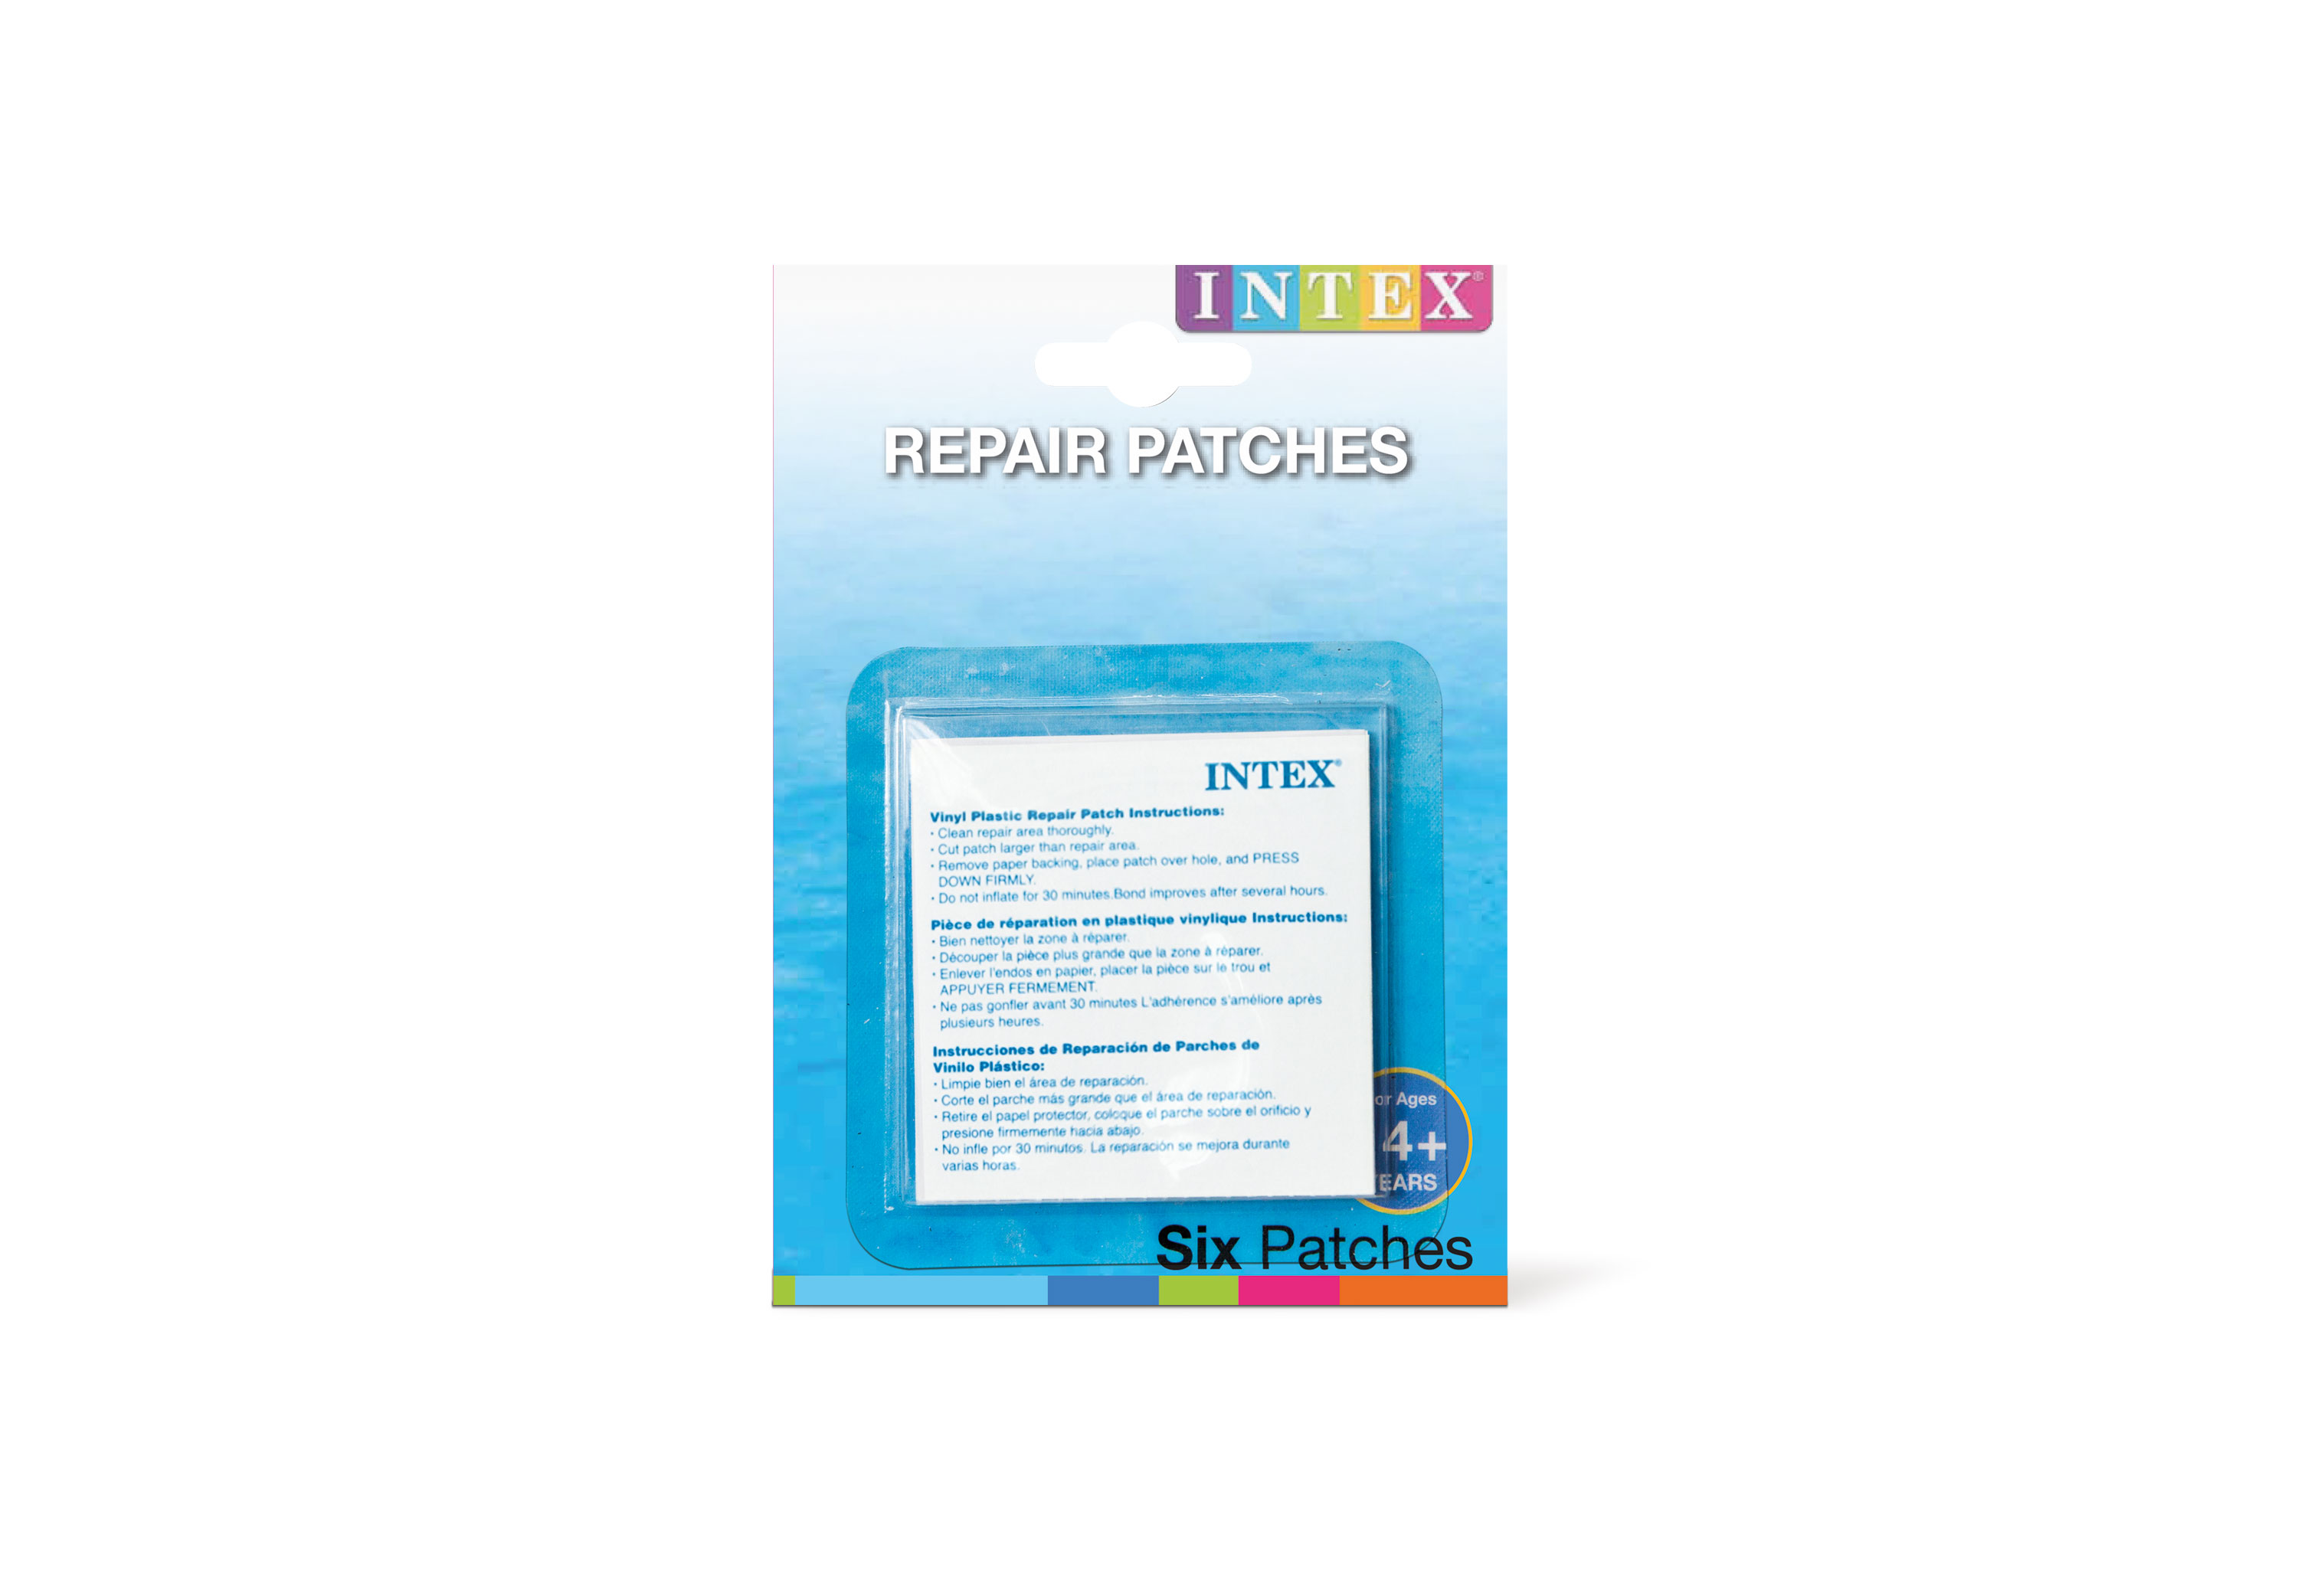 Repair Kit With Self-adhesive заплаткой For Inflatable Products, Intex, Item No. 59631